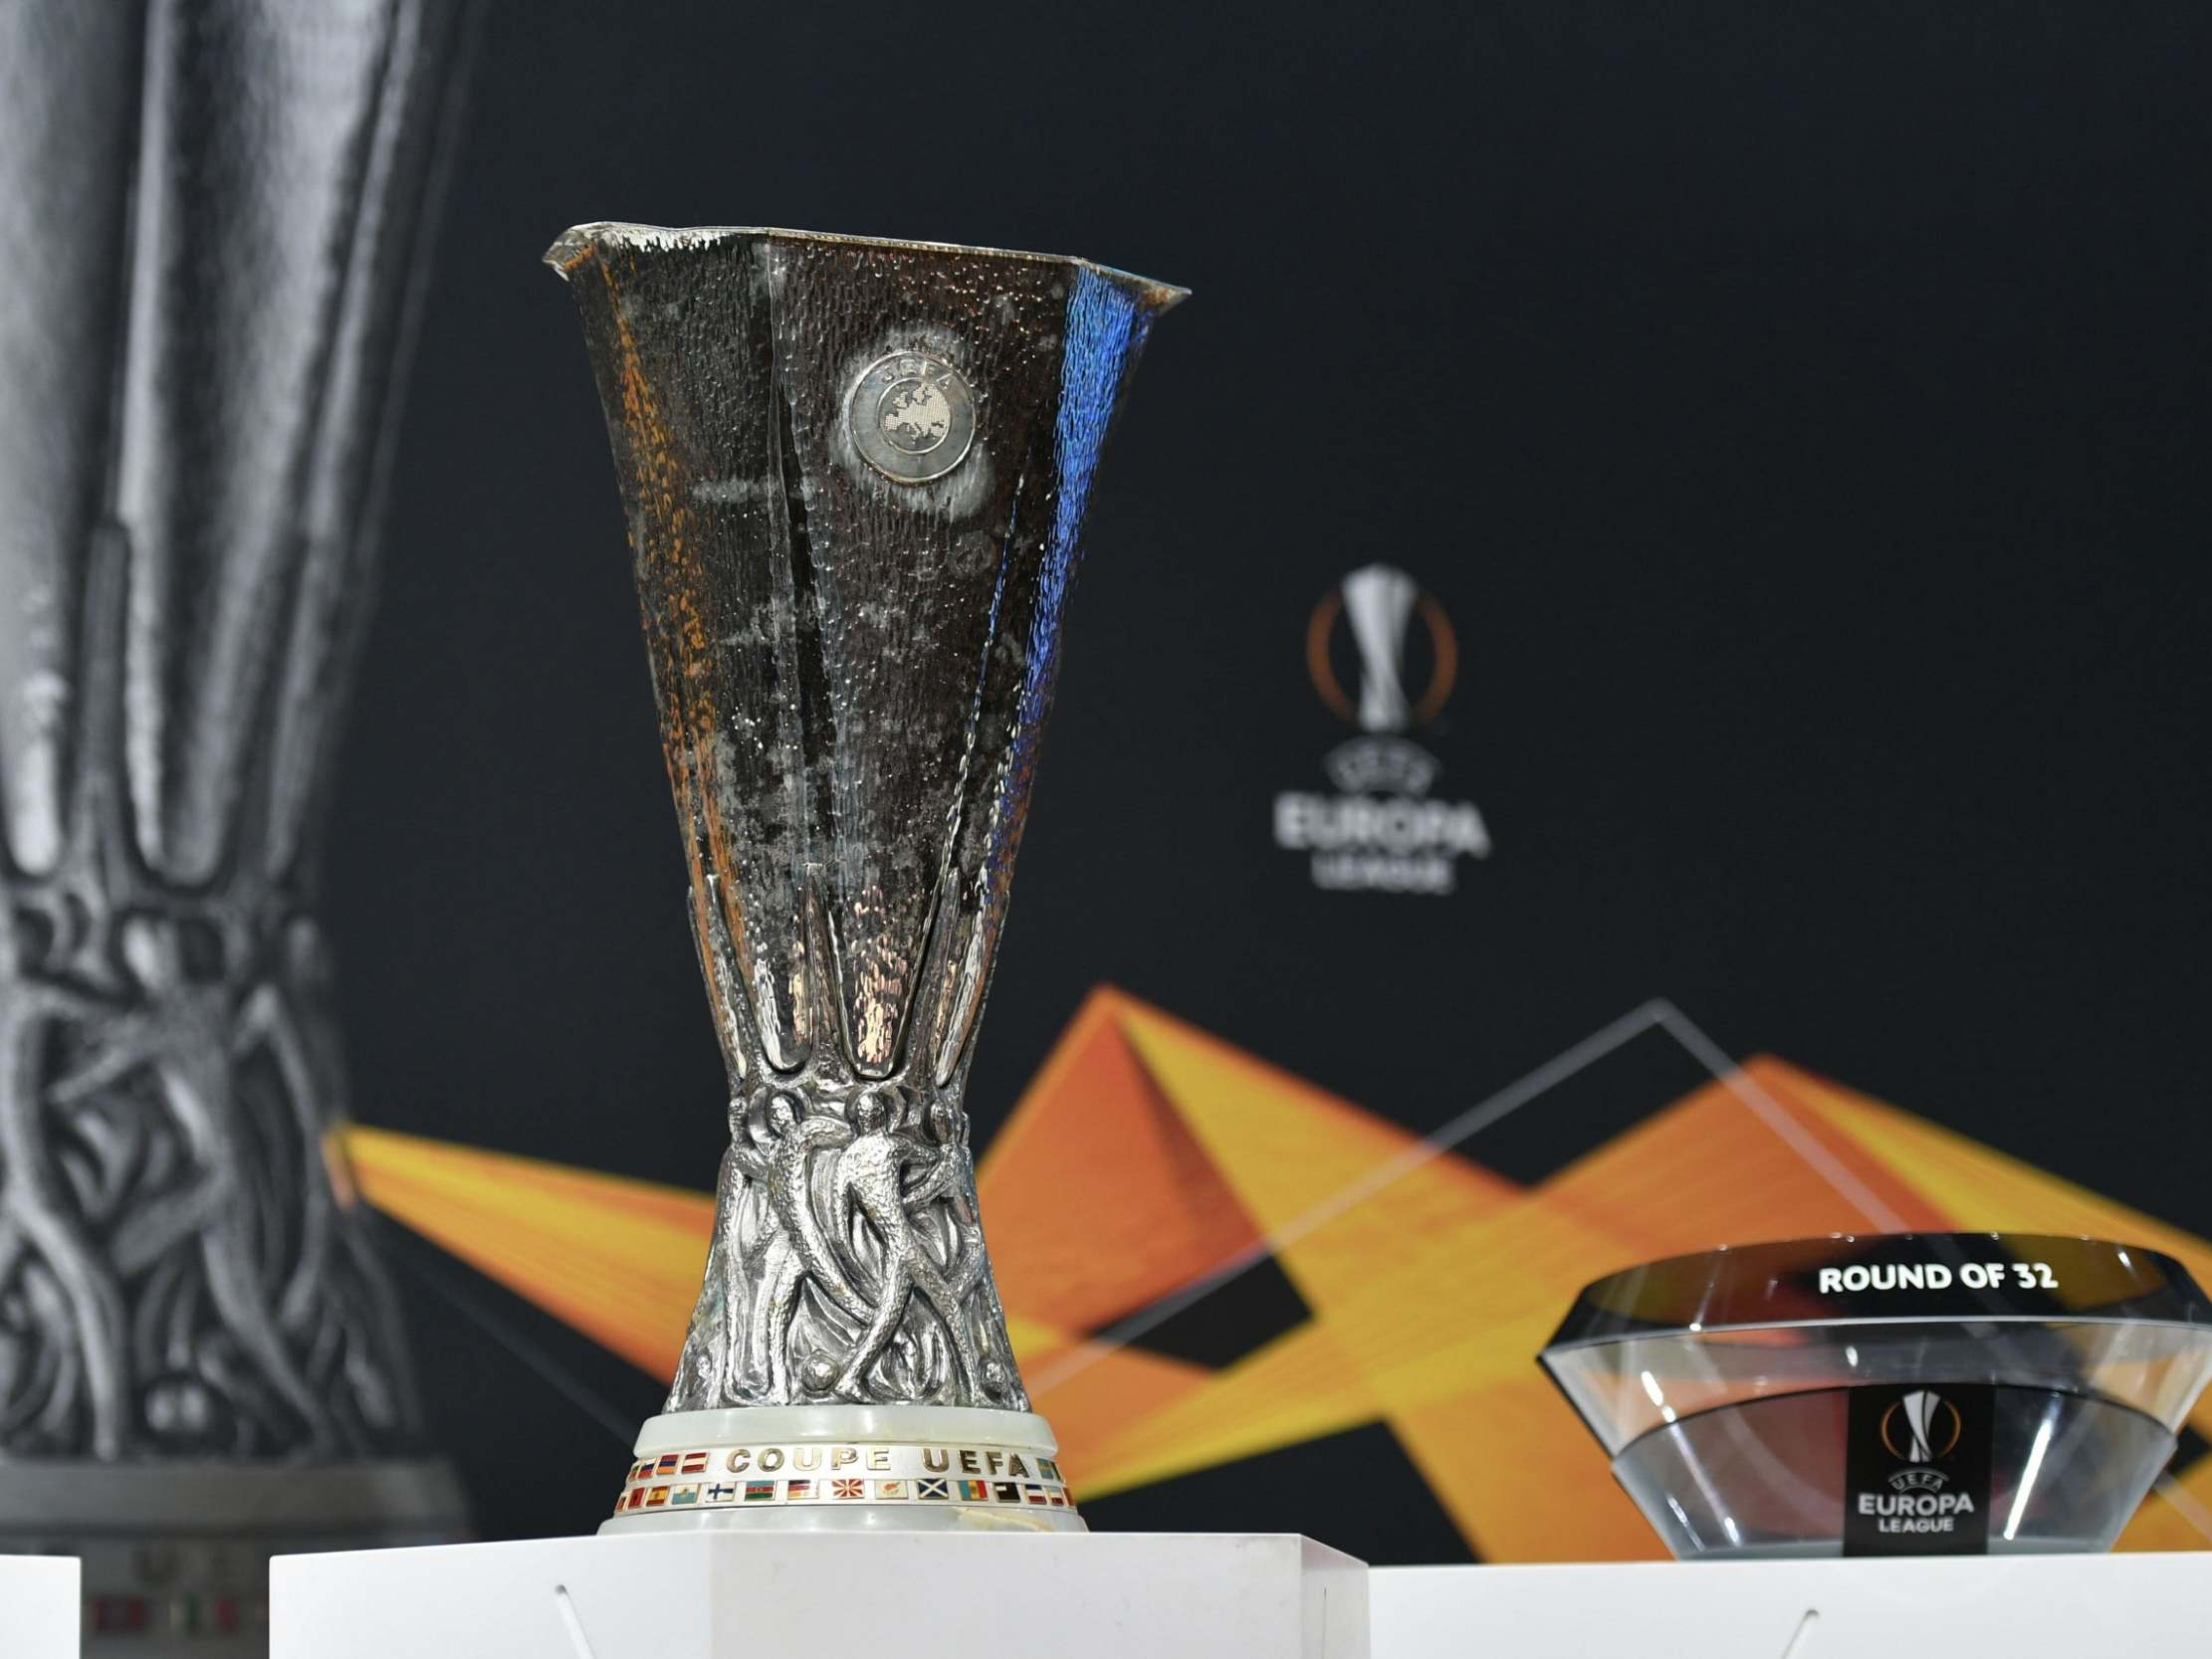 Europa League draw LIVE: Manchester United, Wolves and Rangers learn quarter-final and semi-final fixtures today - The Independent